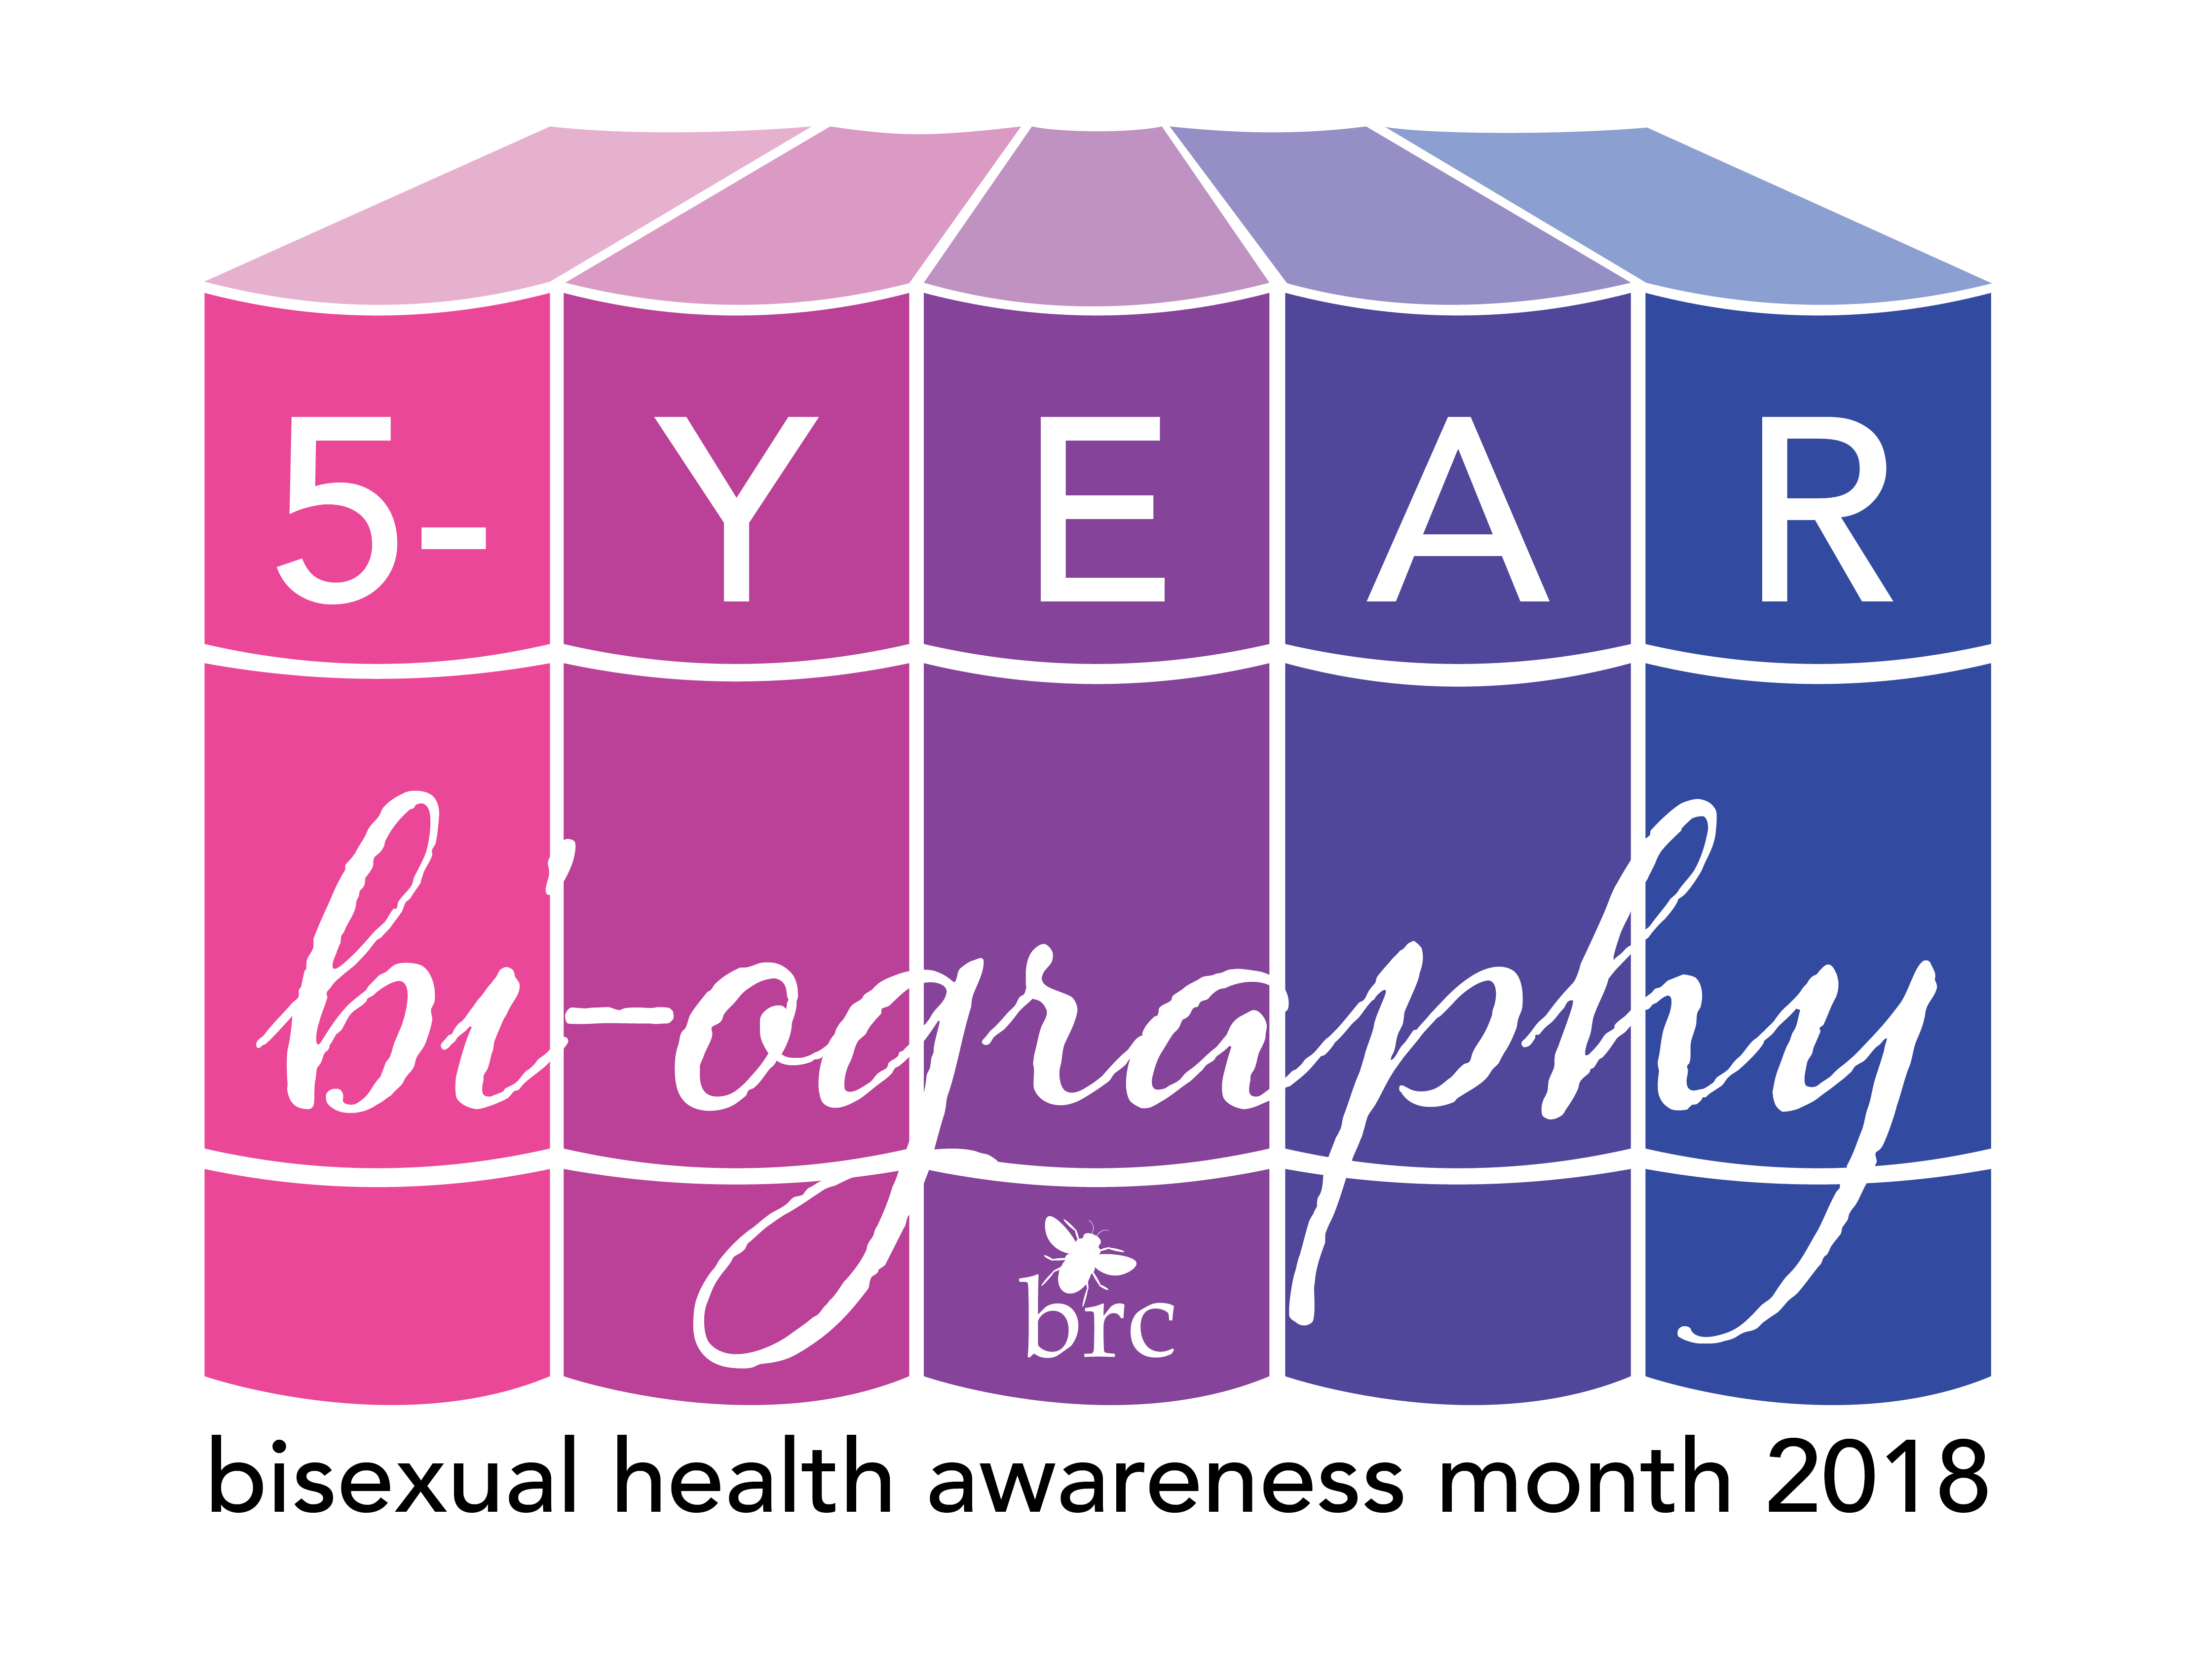 Sexual health awareness campaigns by month